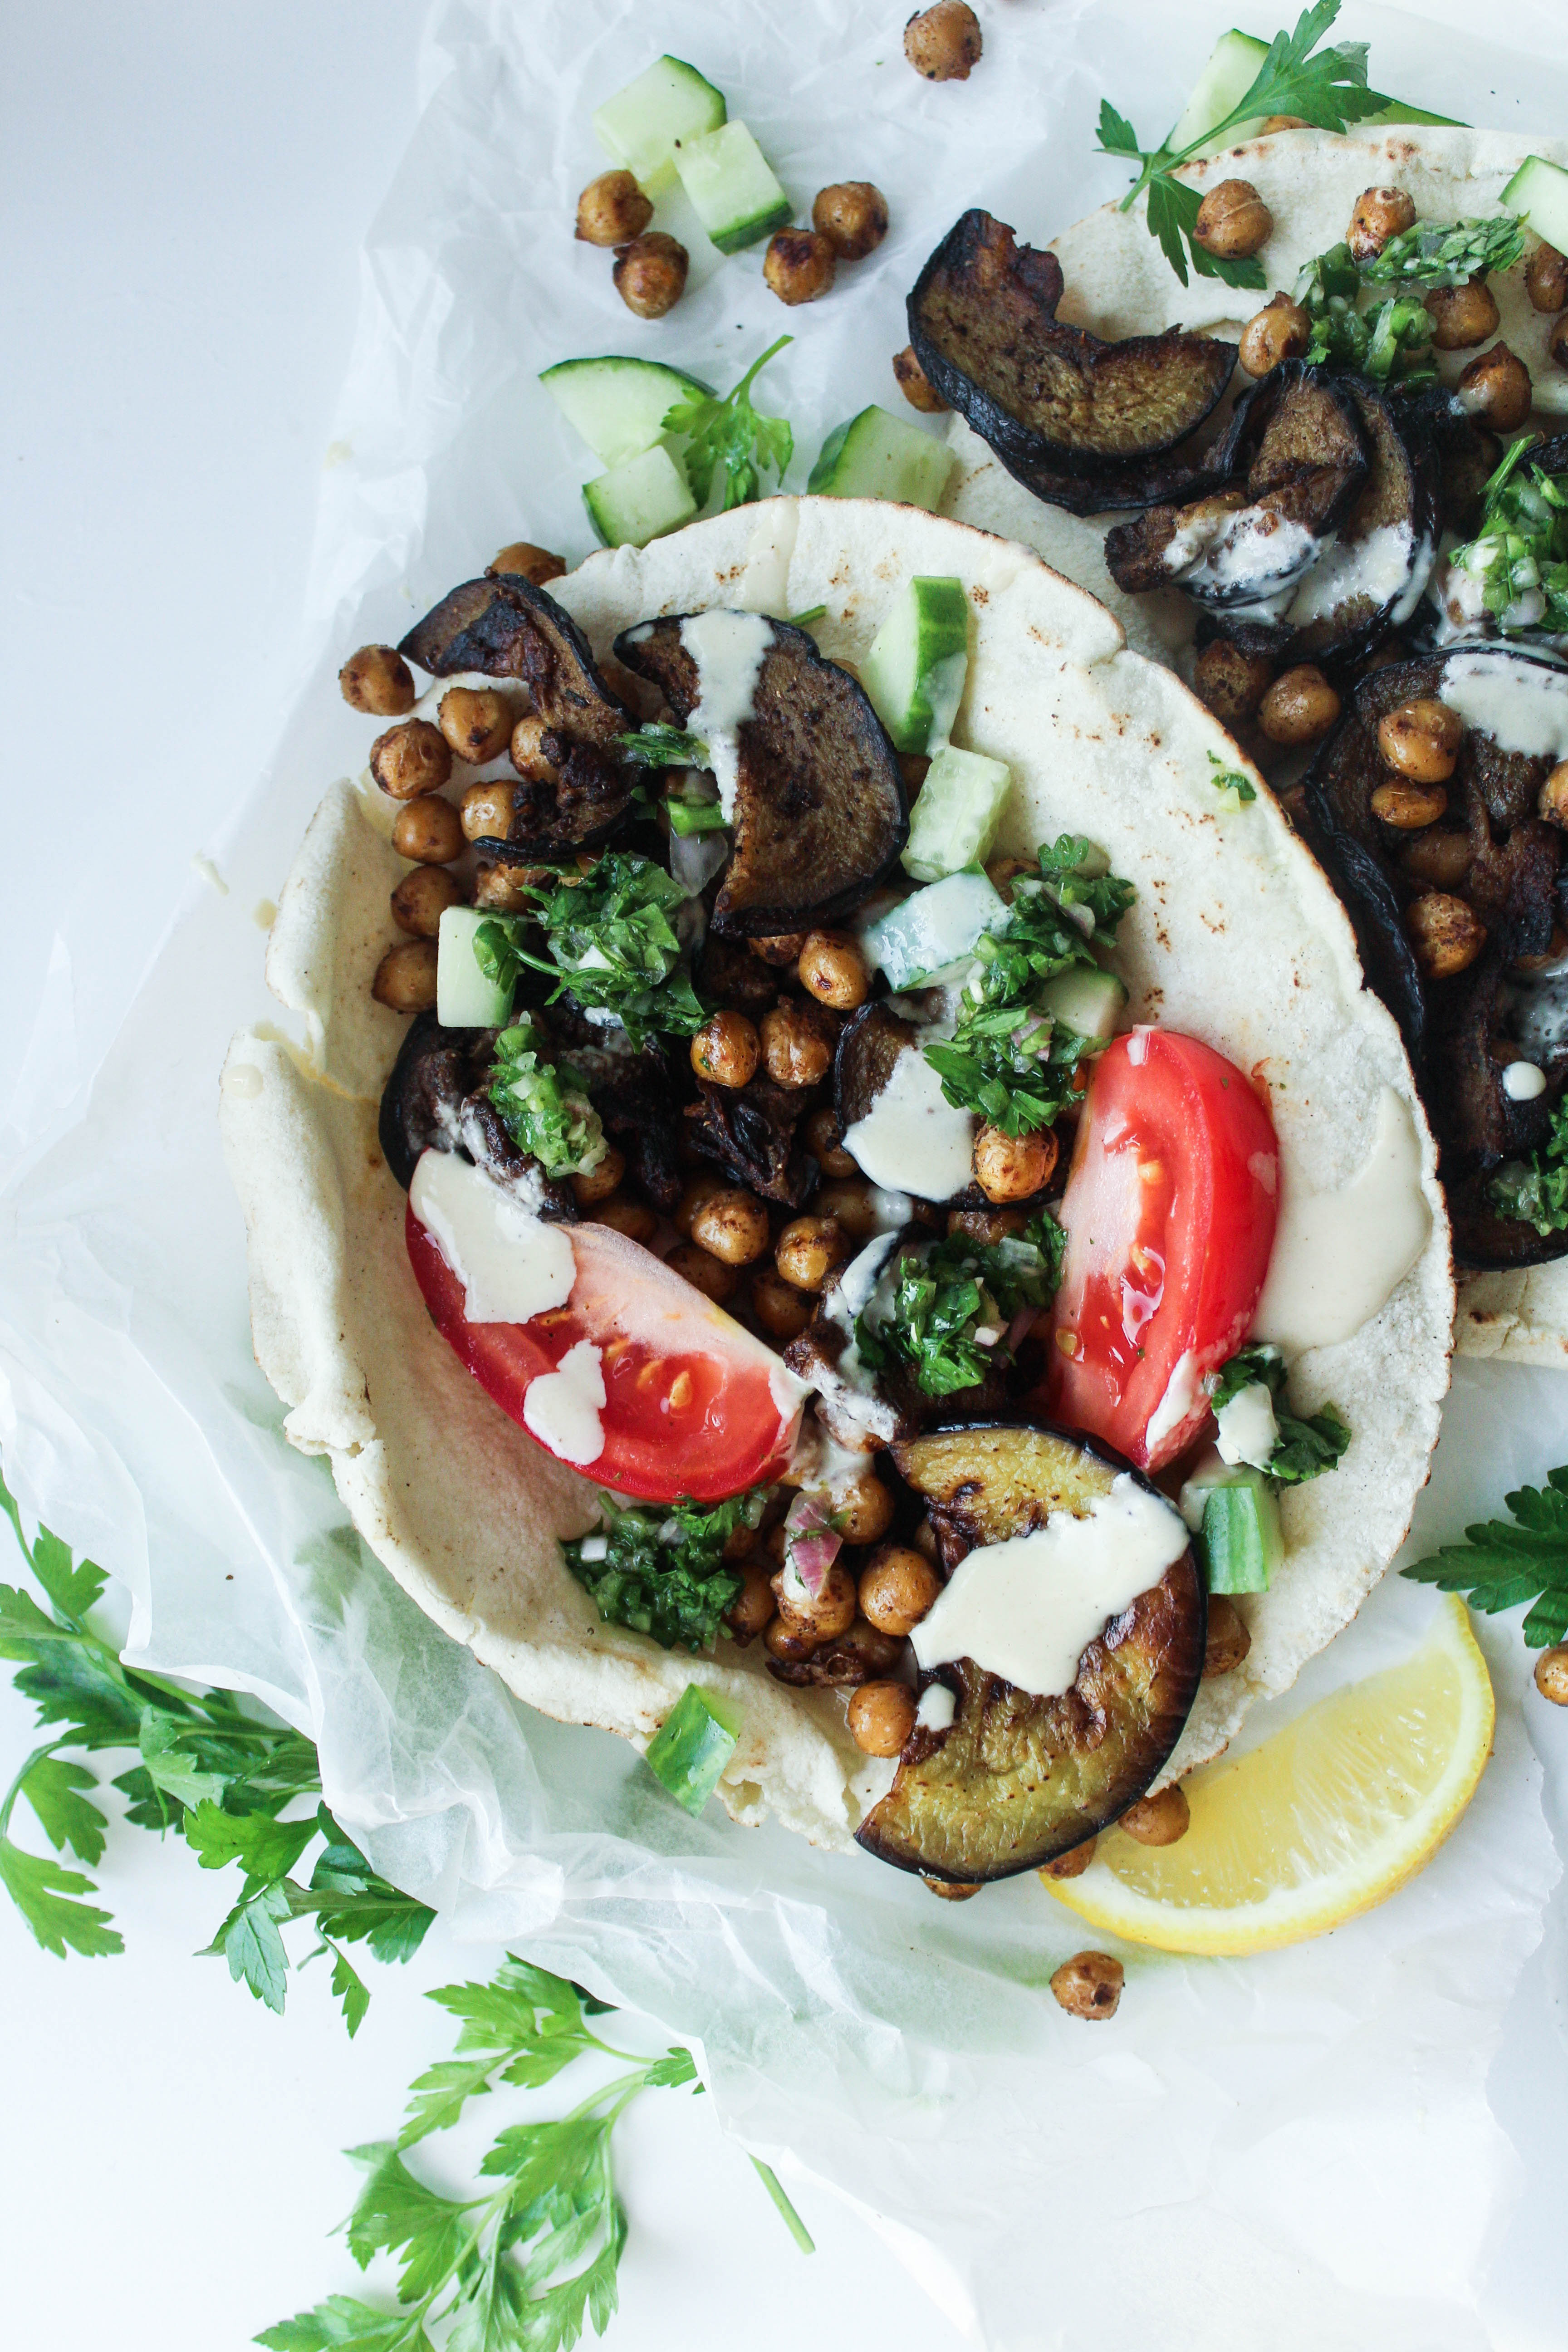 Aubergine + Chickpea Sabich (Stuffed Middle Eastern Pitas)